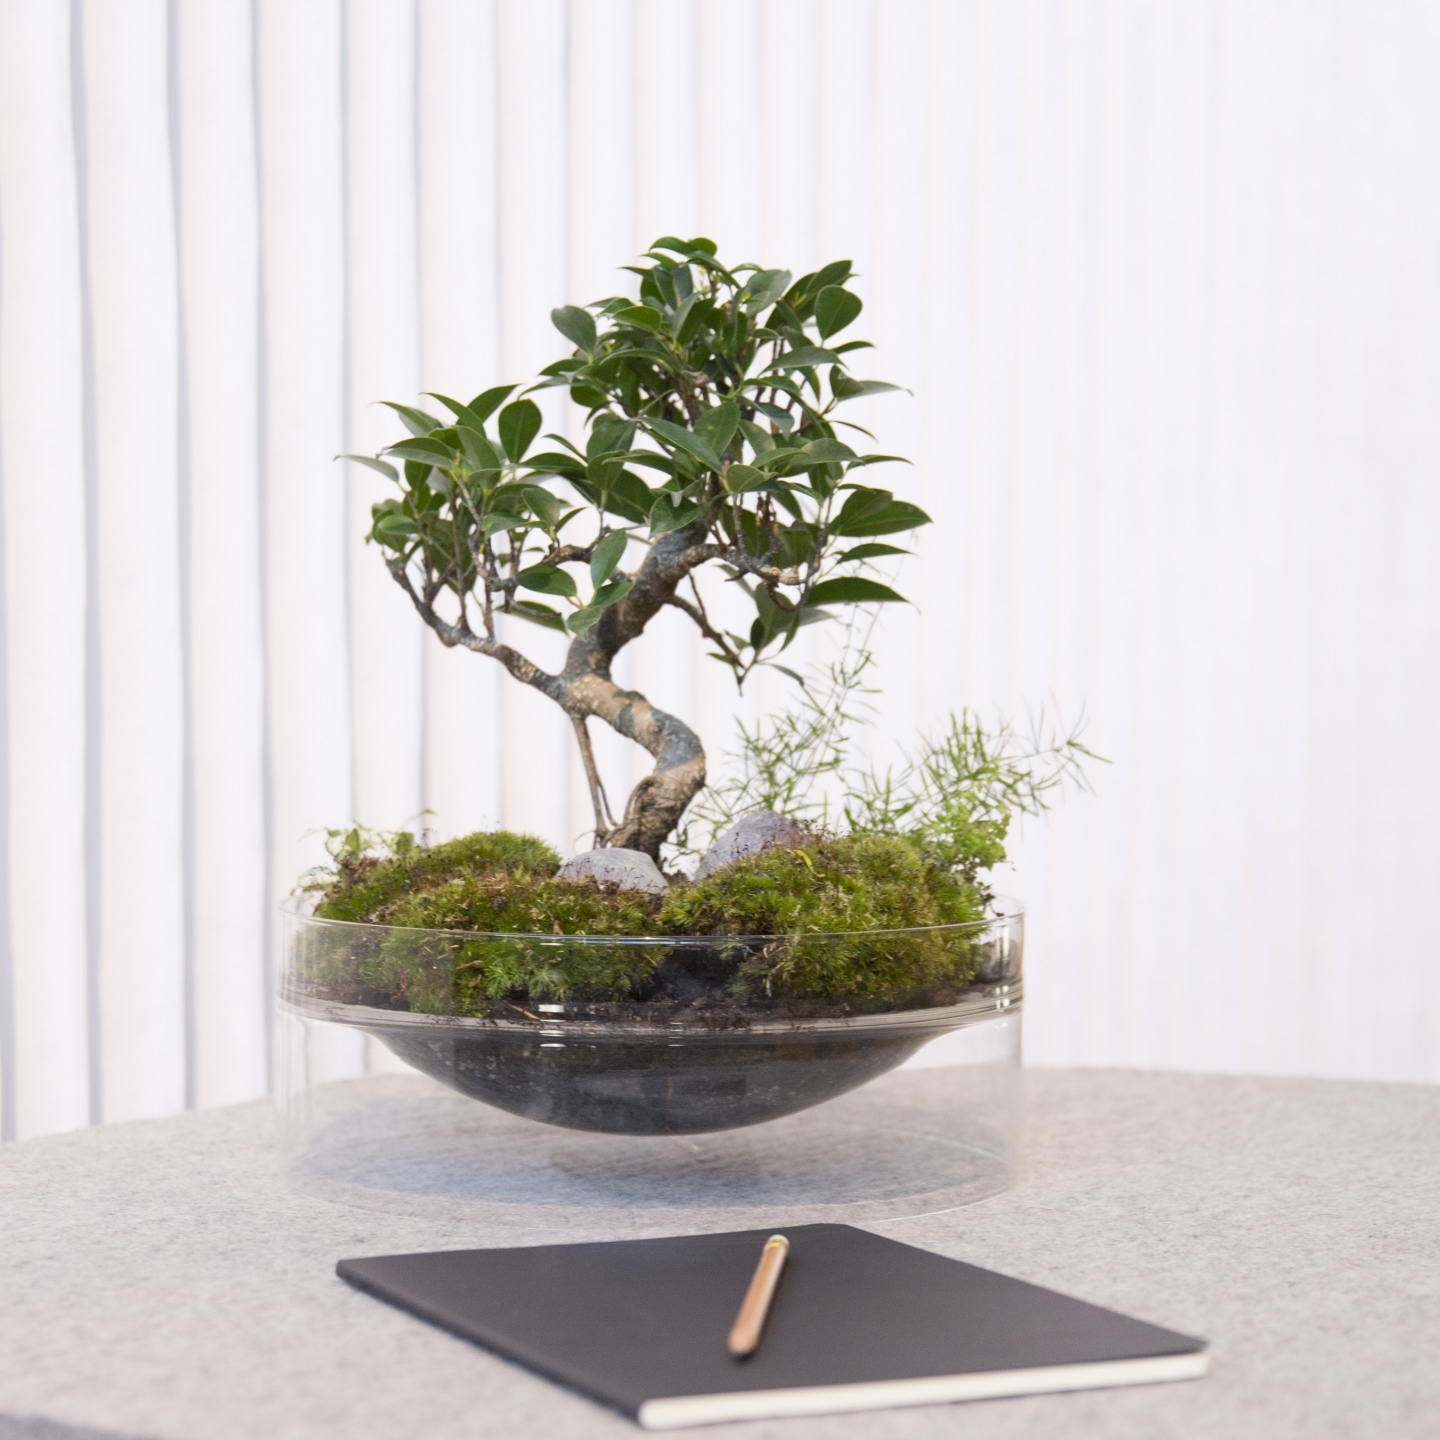 bonsai tree in a floating glass vase.